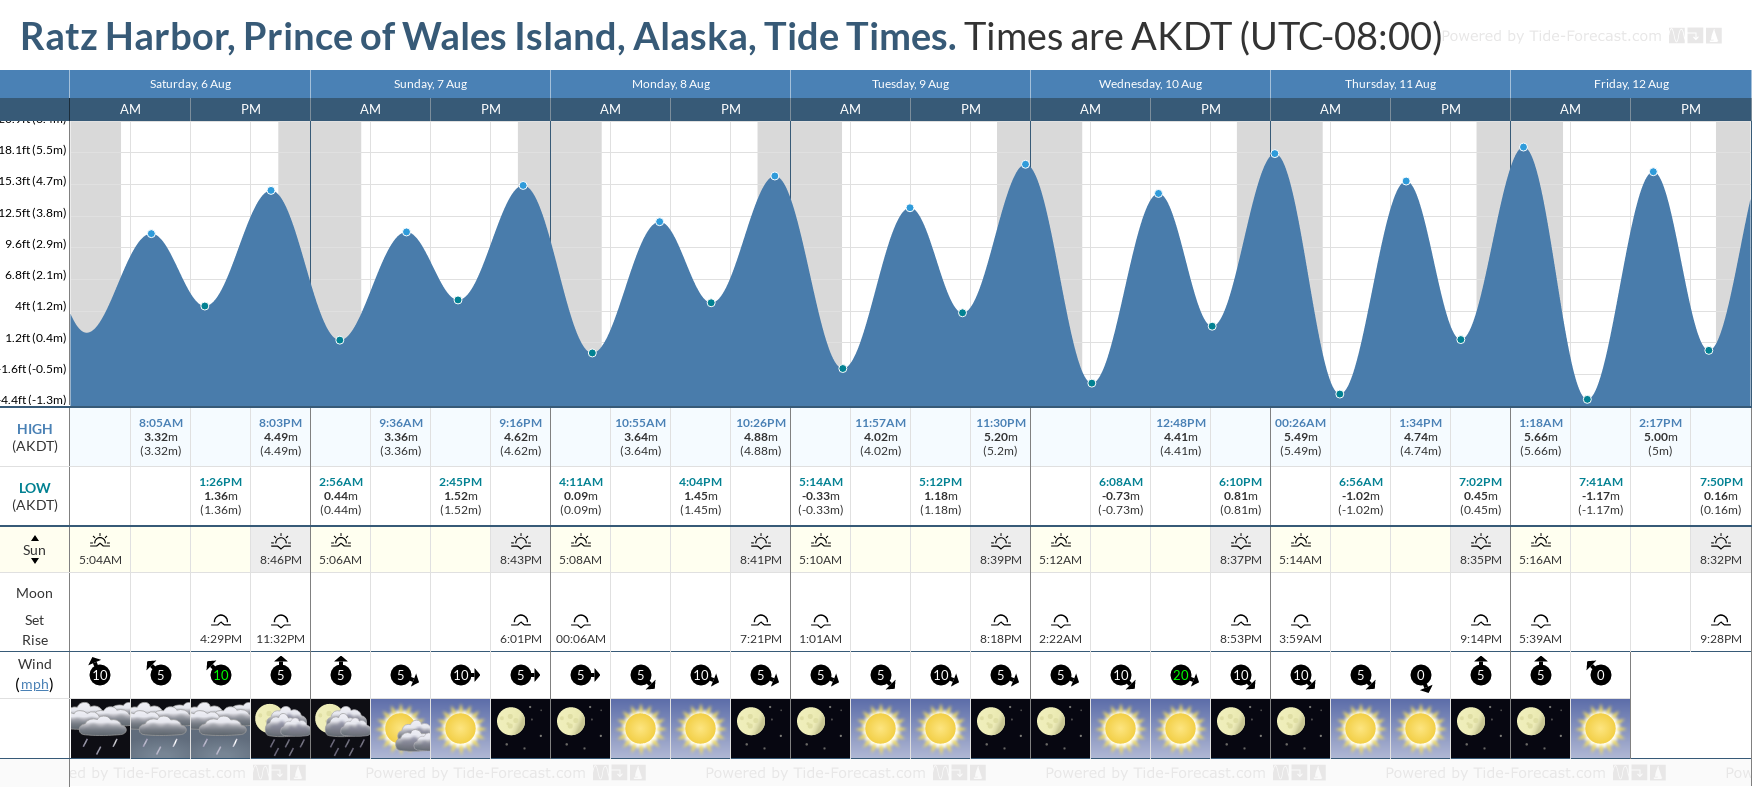 Ratz Harbor, Prince of Wales Island, Alaska Tide Chart including high and low tide tide times for the next 7 days